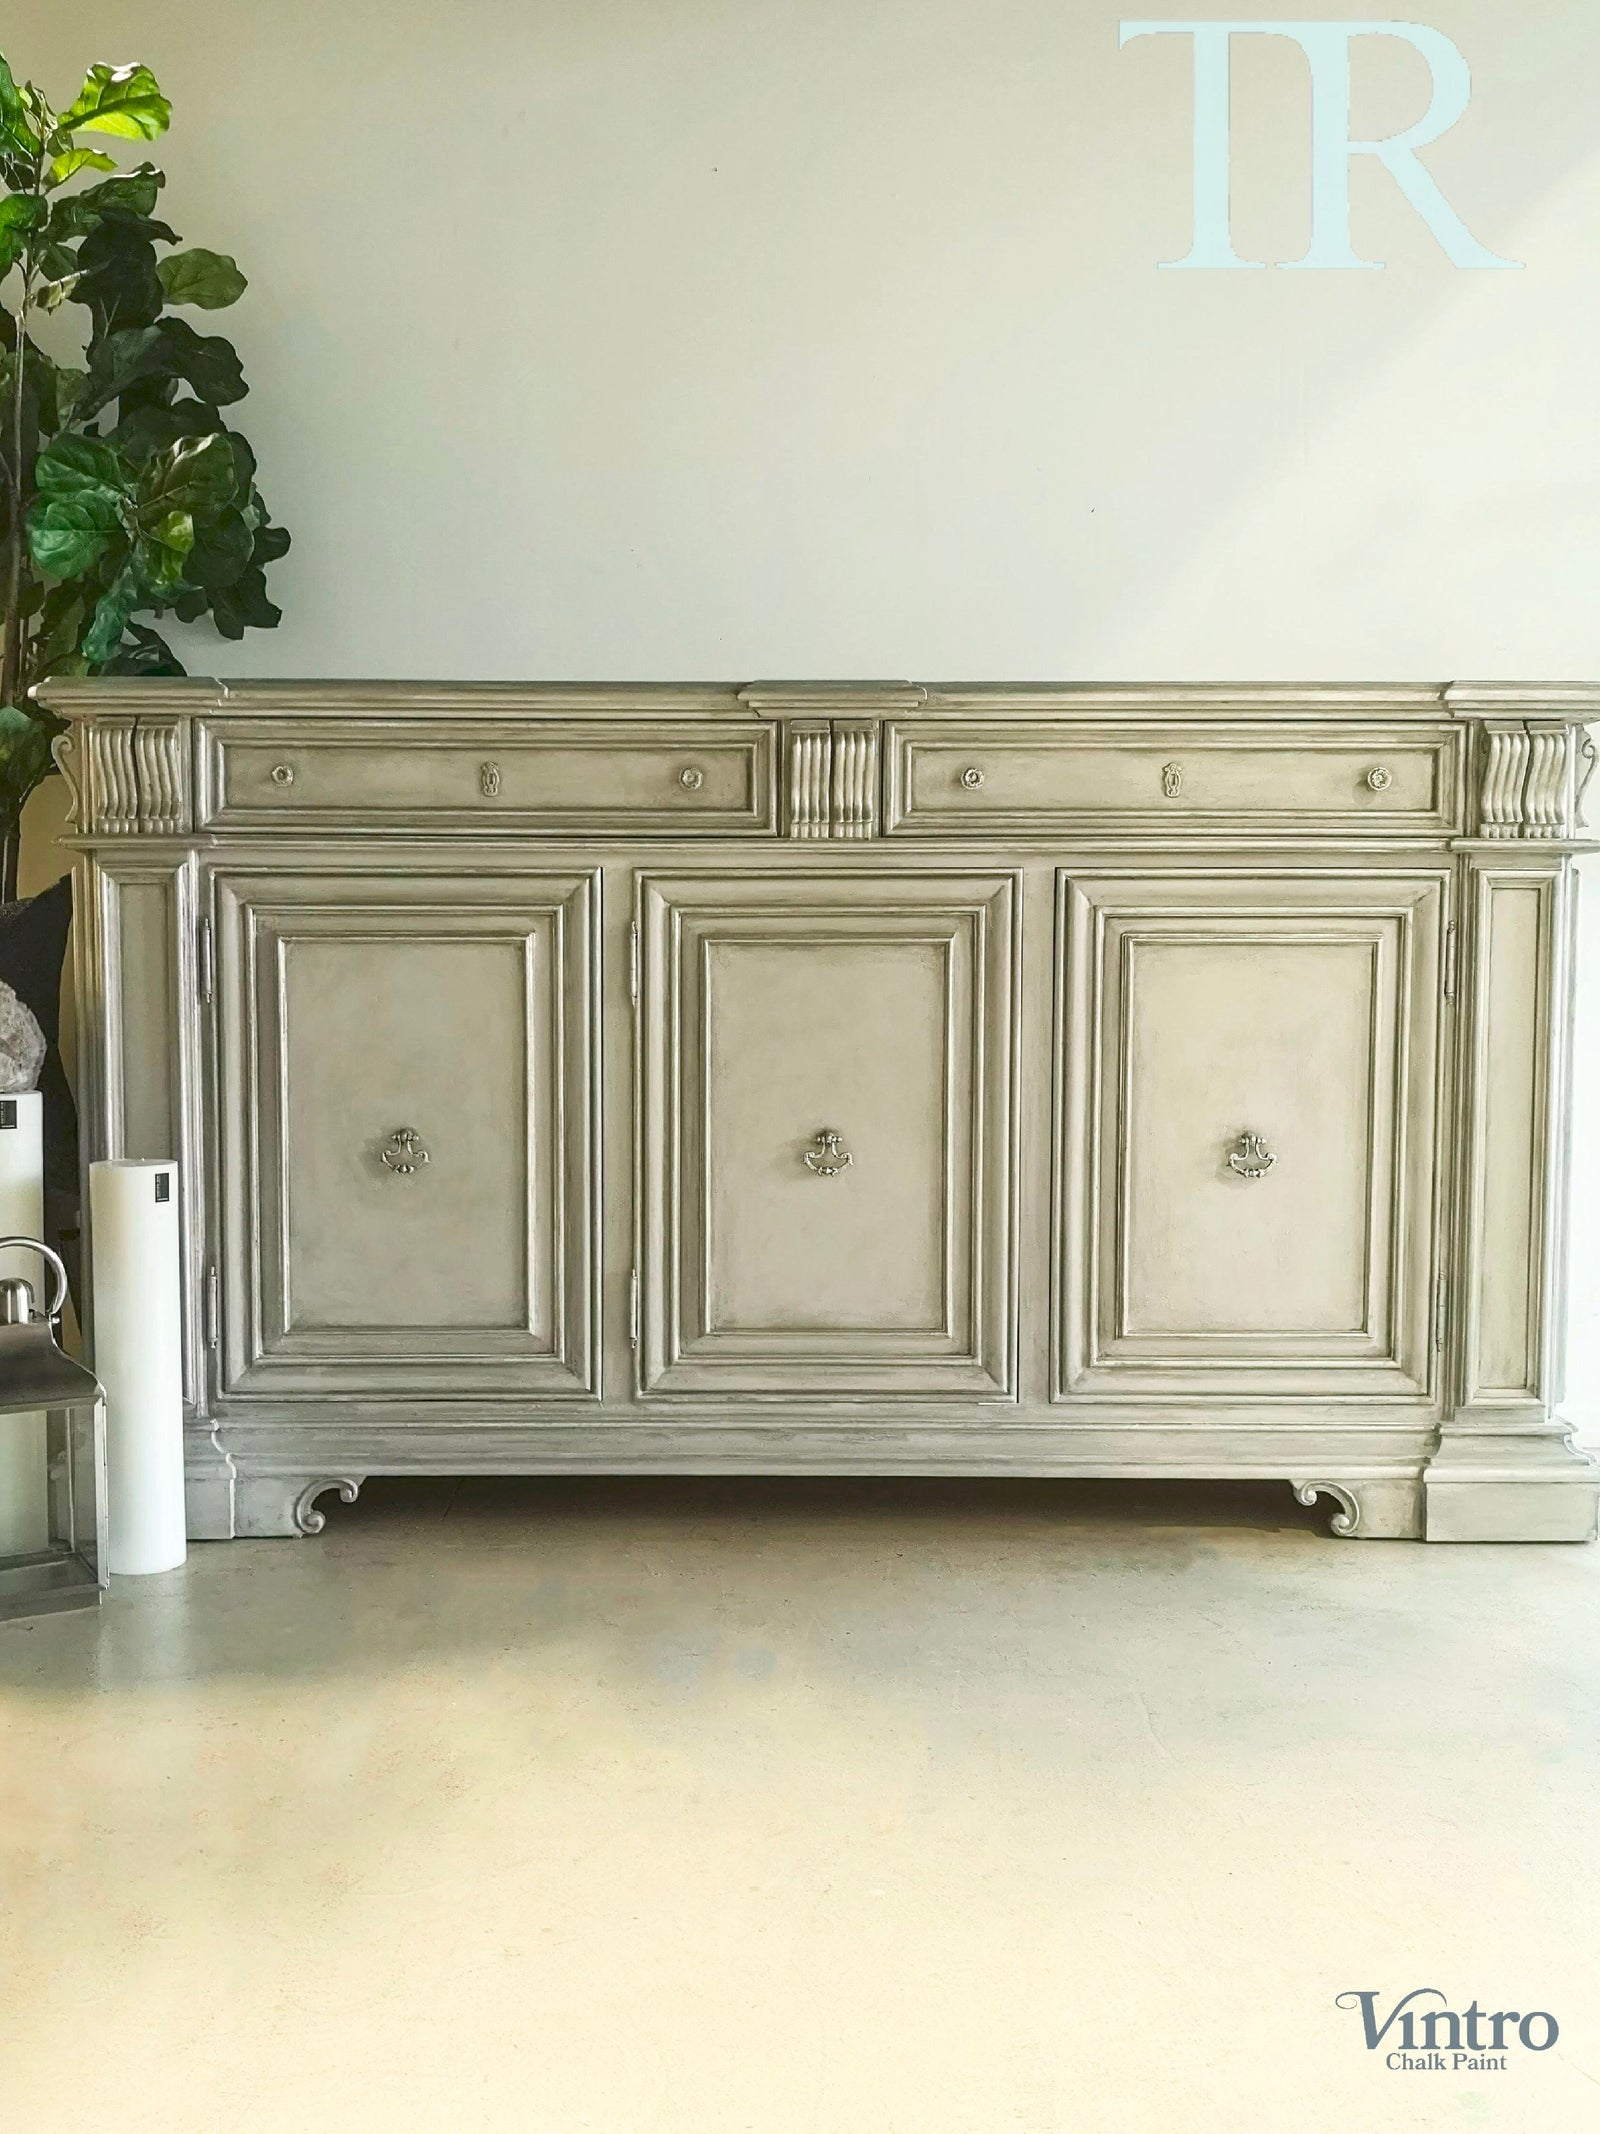 Athelia : Edwardian style sideboard in a Pale Grey and Champagne Silver bevels.